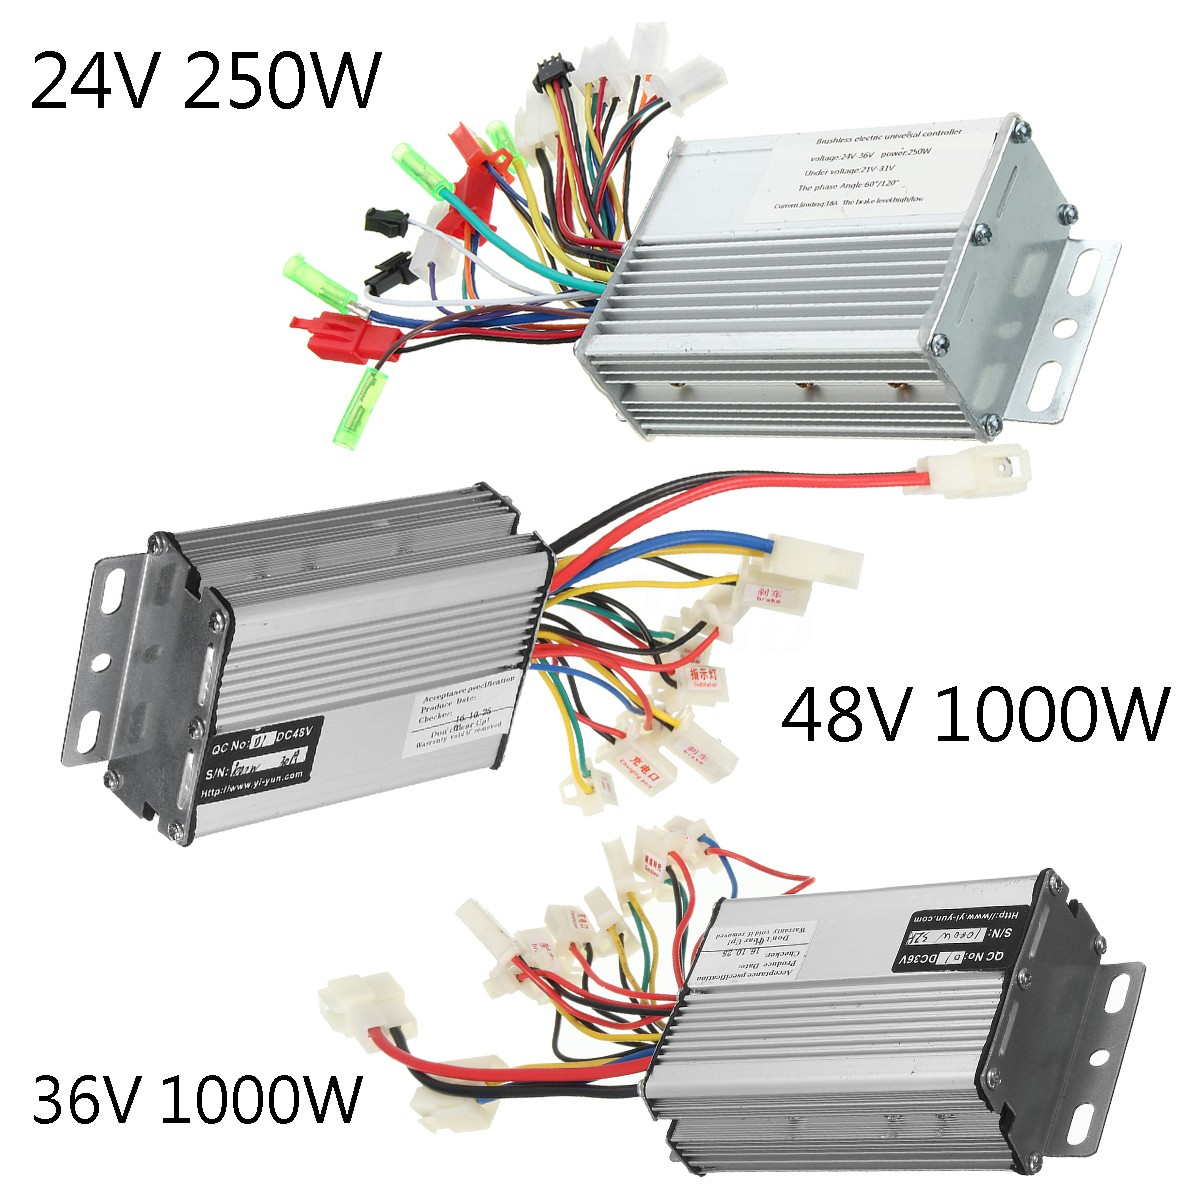 Wiring Diagram For Motorized Bicycle Library 24v 36v 48v 250w 1000w Electric Scooter Speed Controller Motor Bike